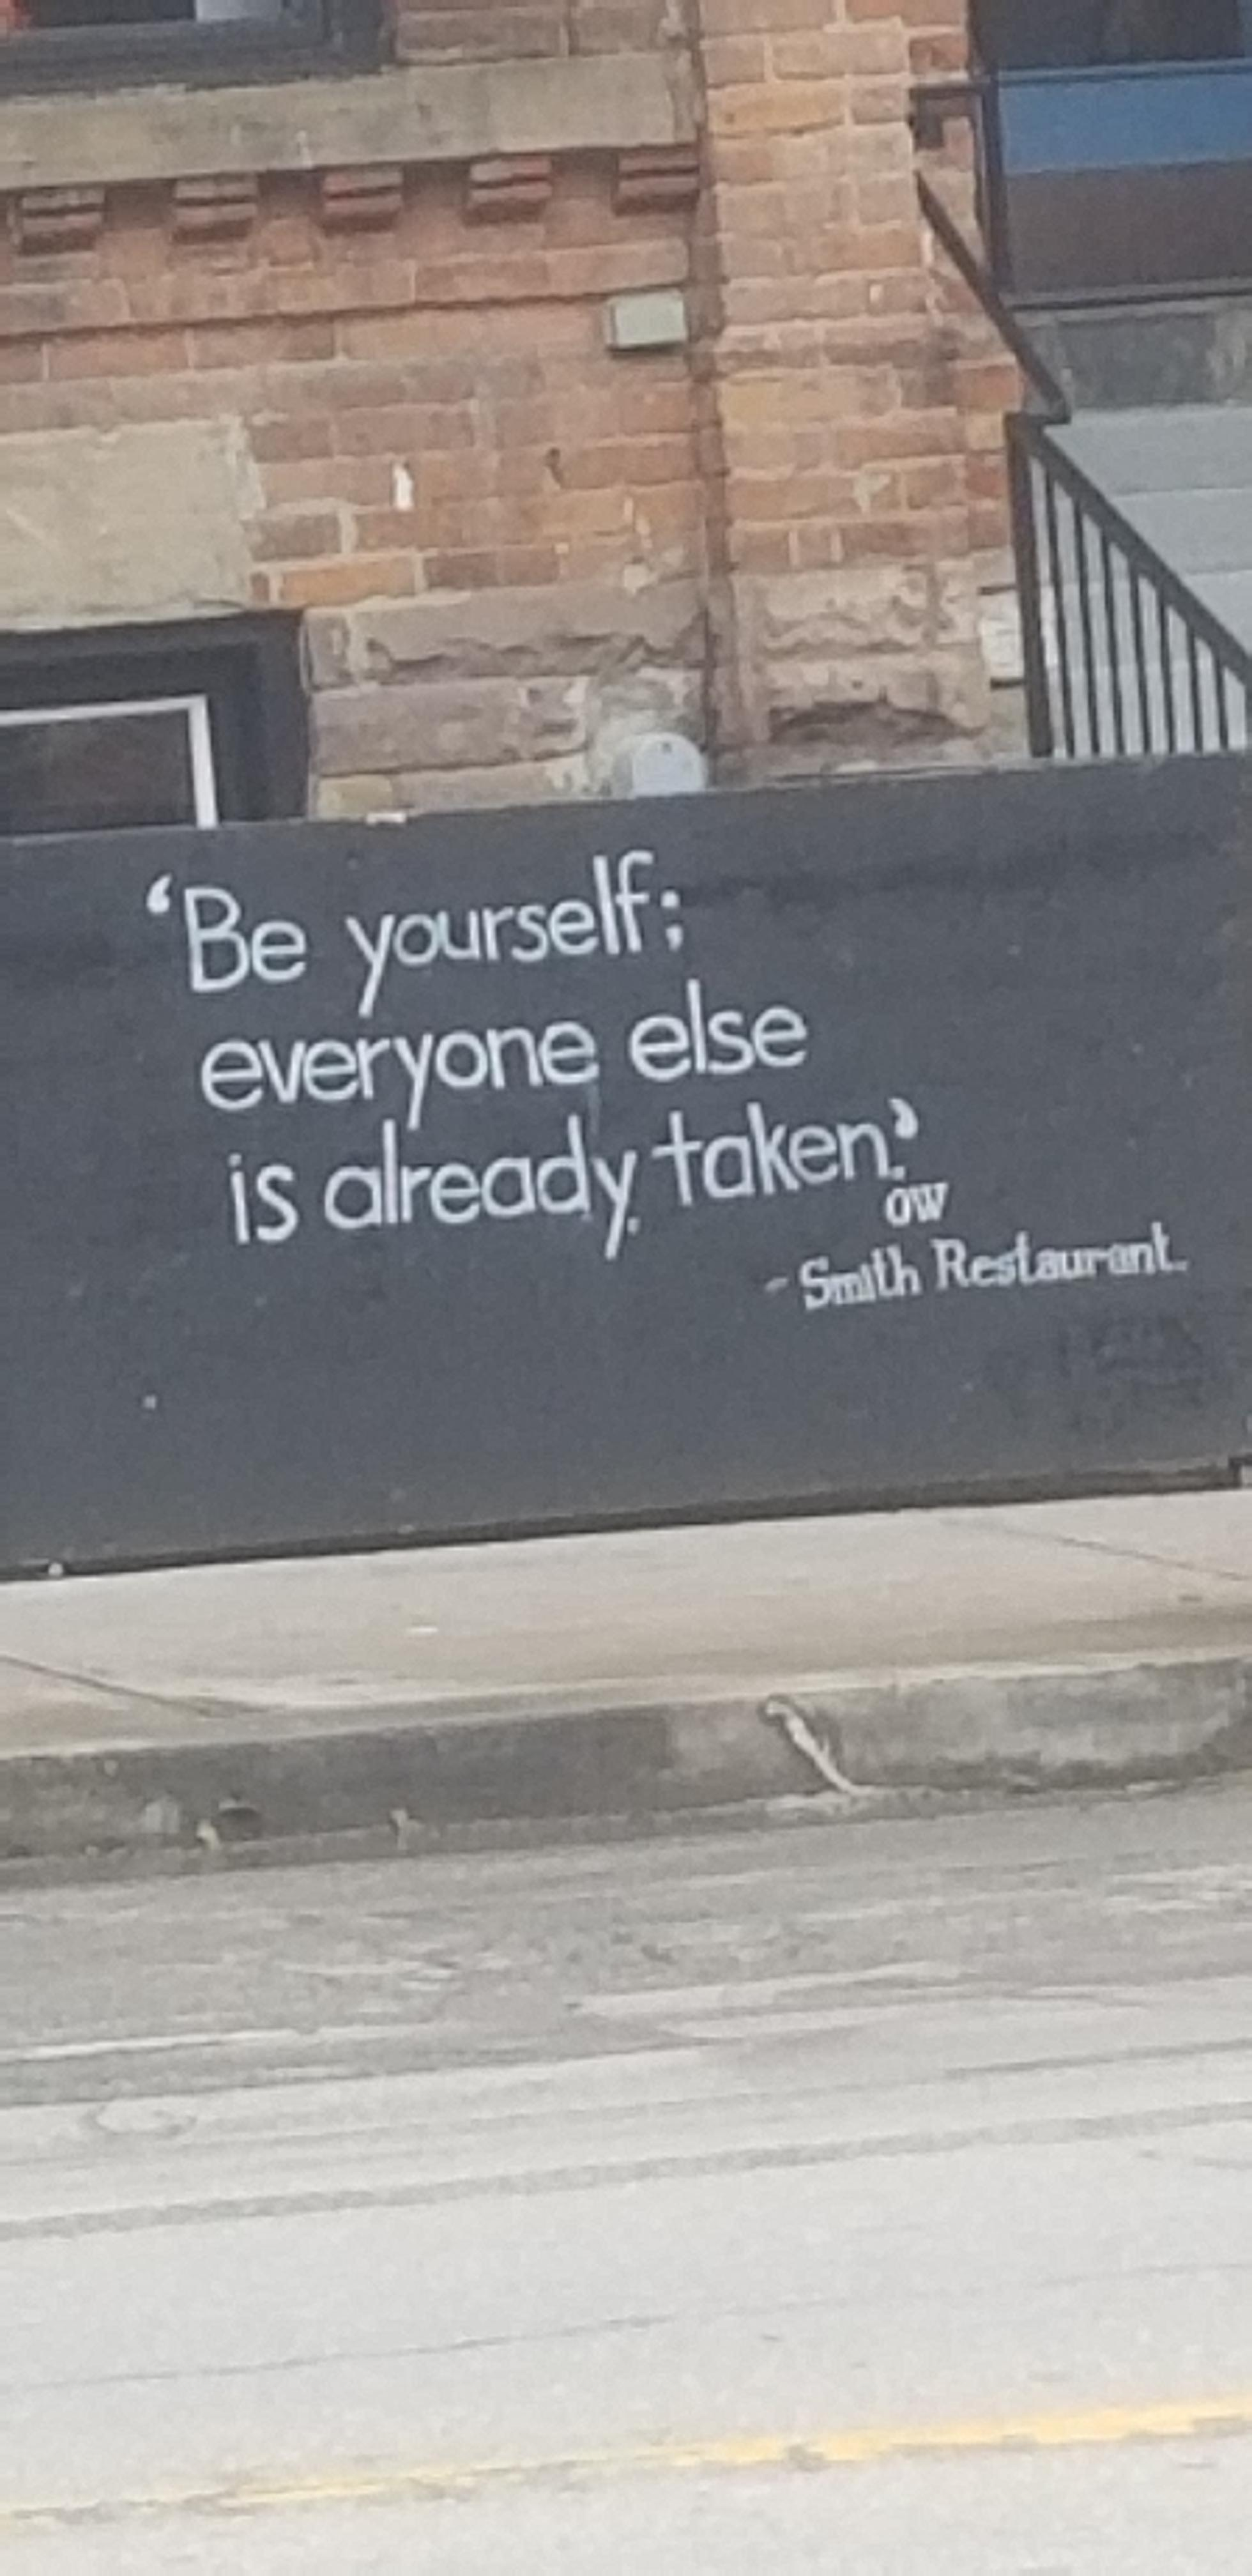 [Image] Found while walking down the streets of Toronto